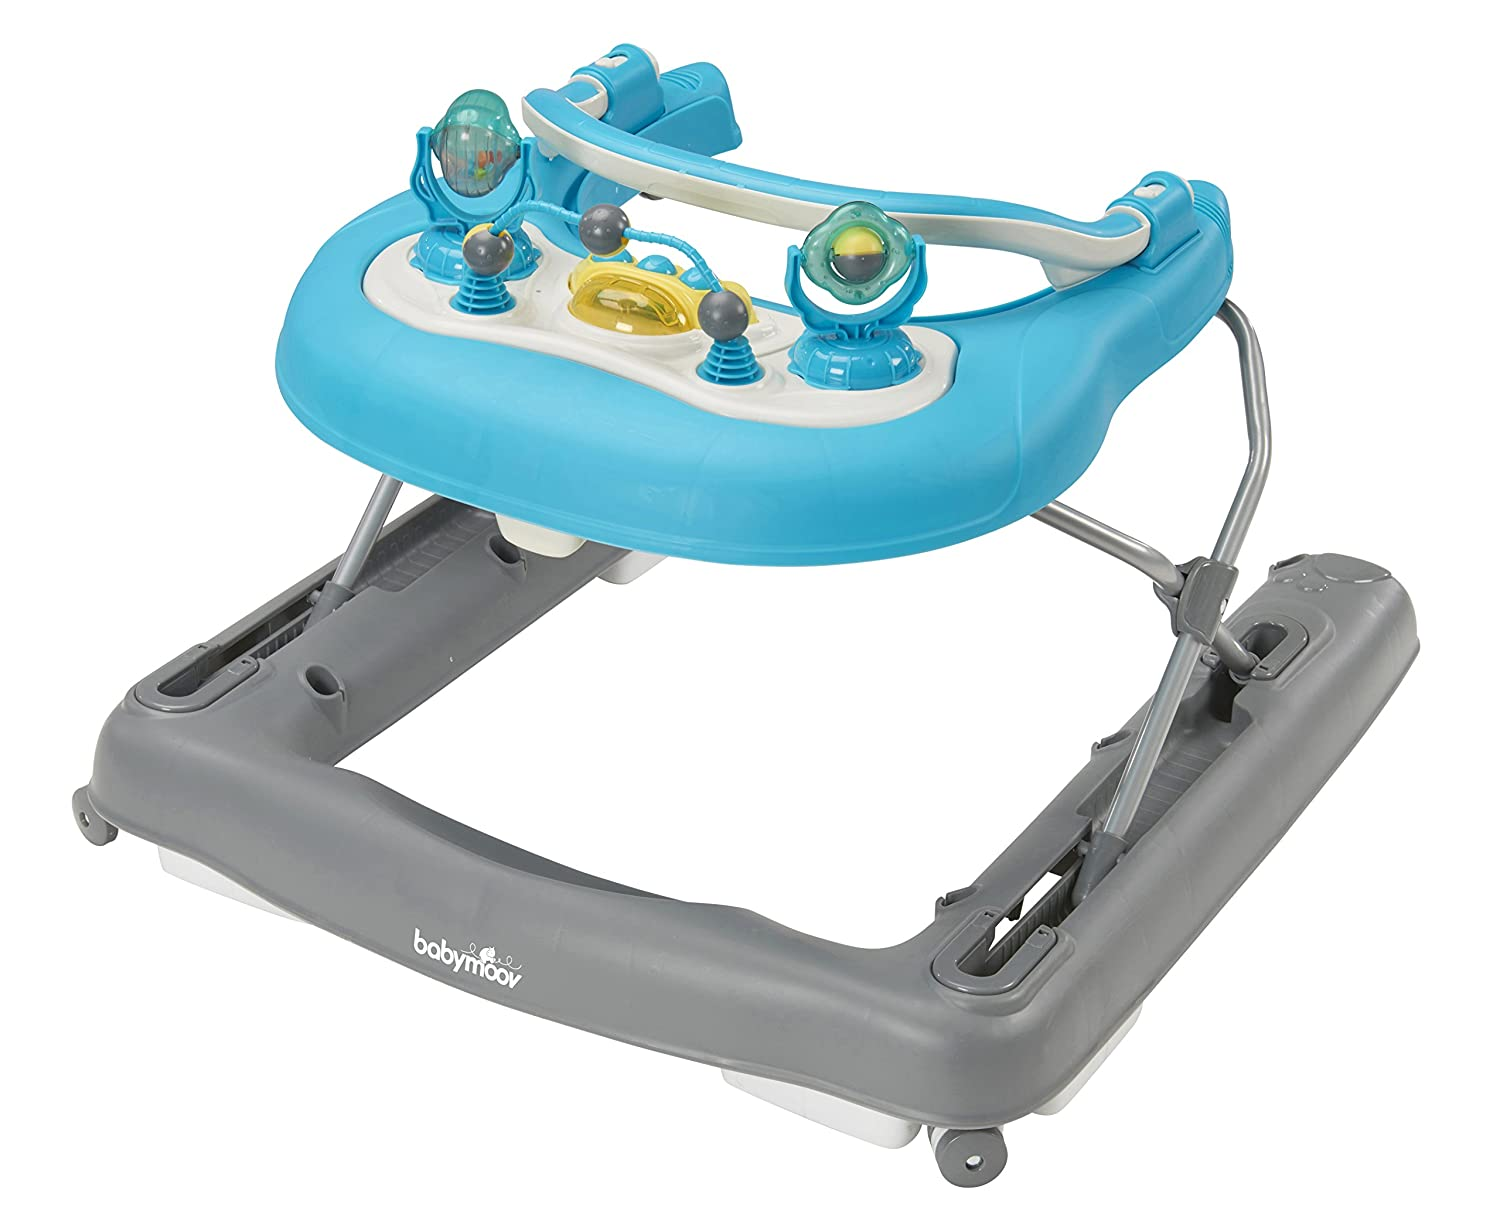 Babymoov A040007 - Andador 2 en 1, color azul: Amazon.es: Bebé